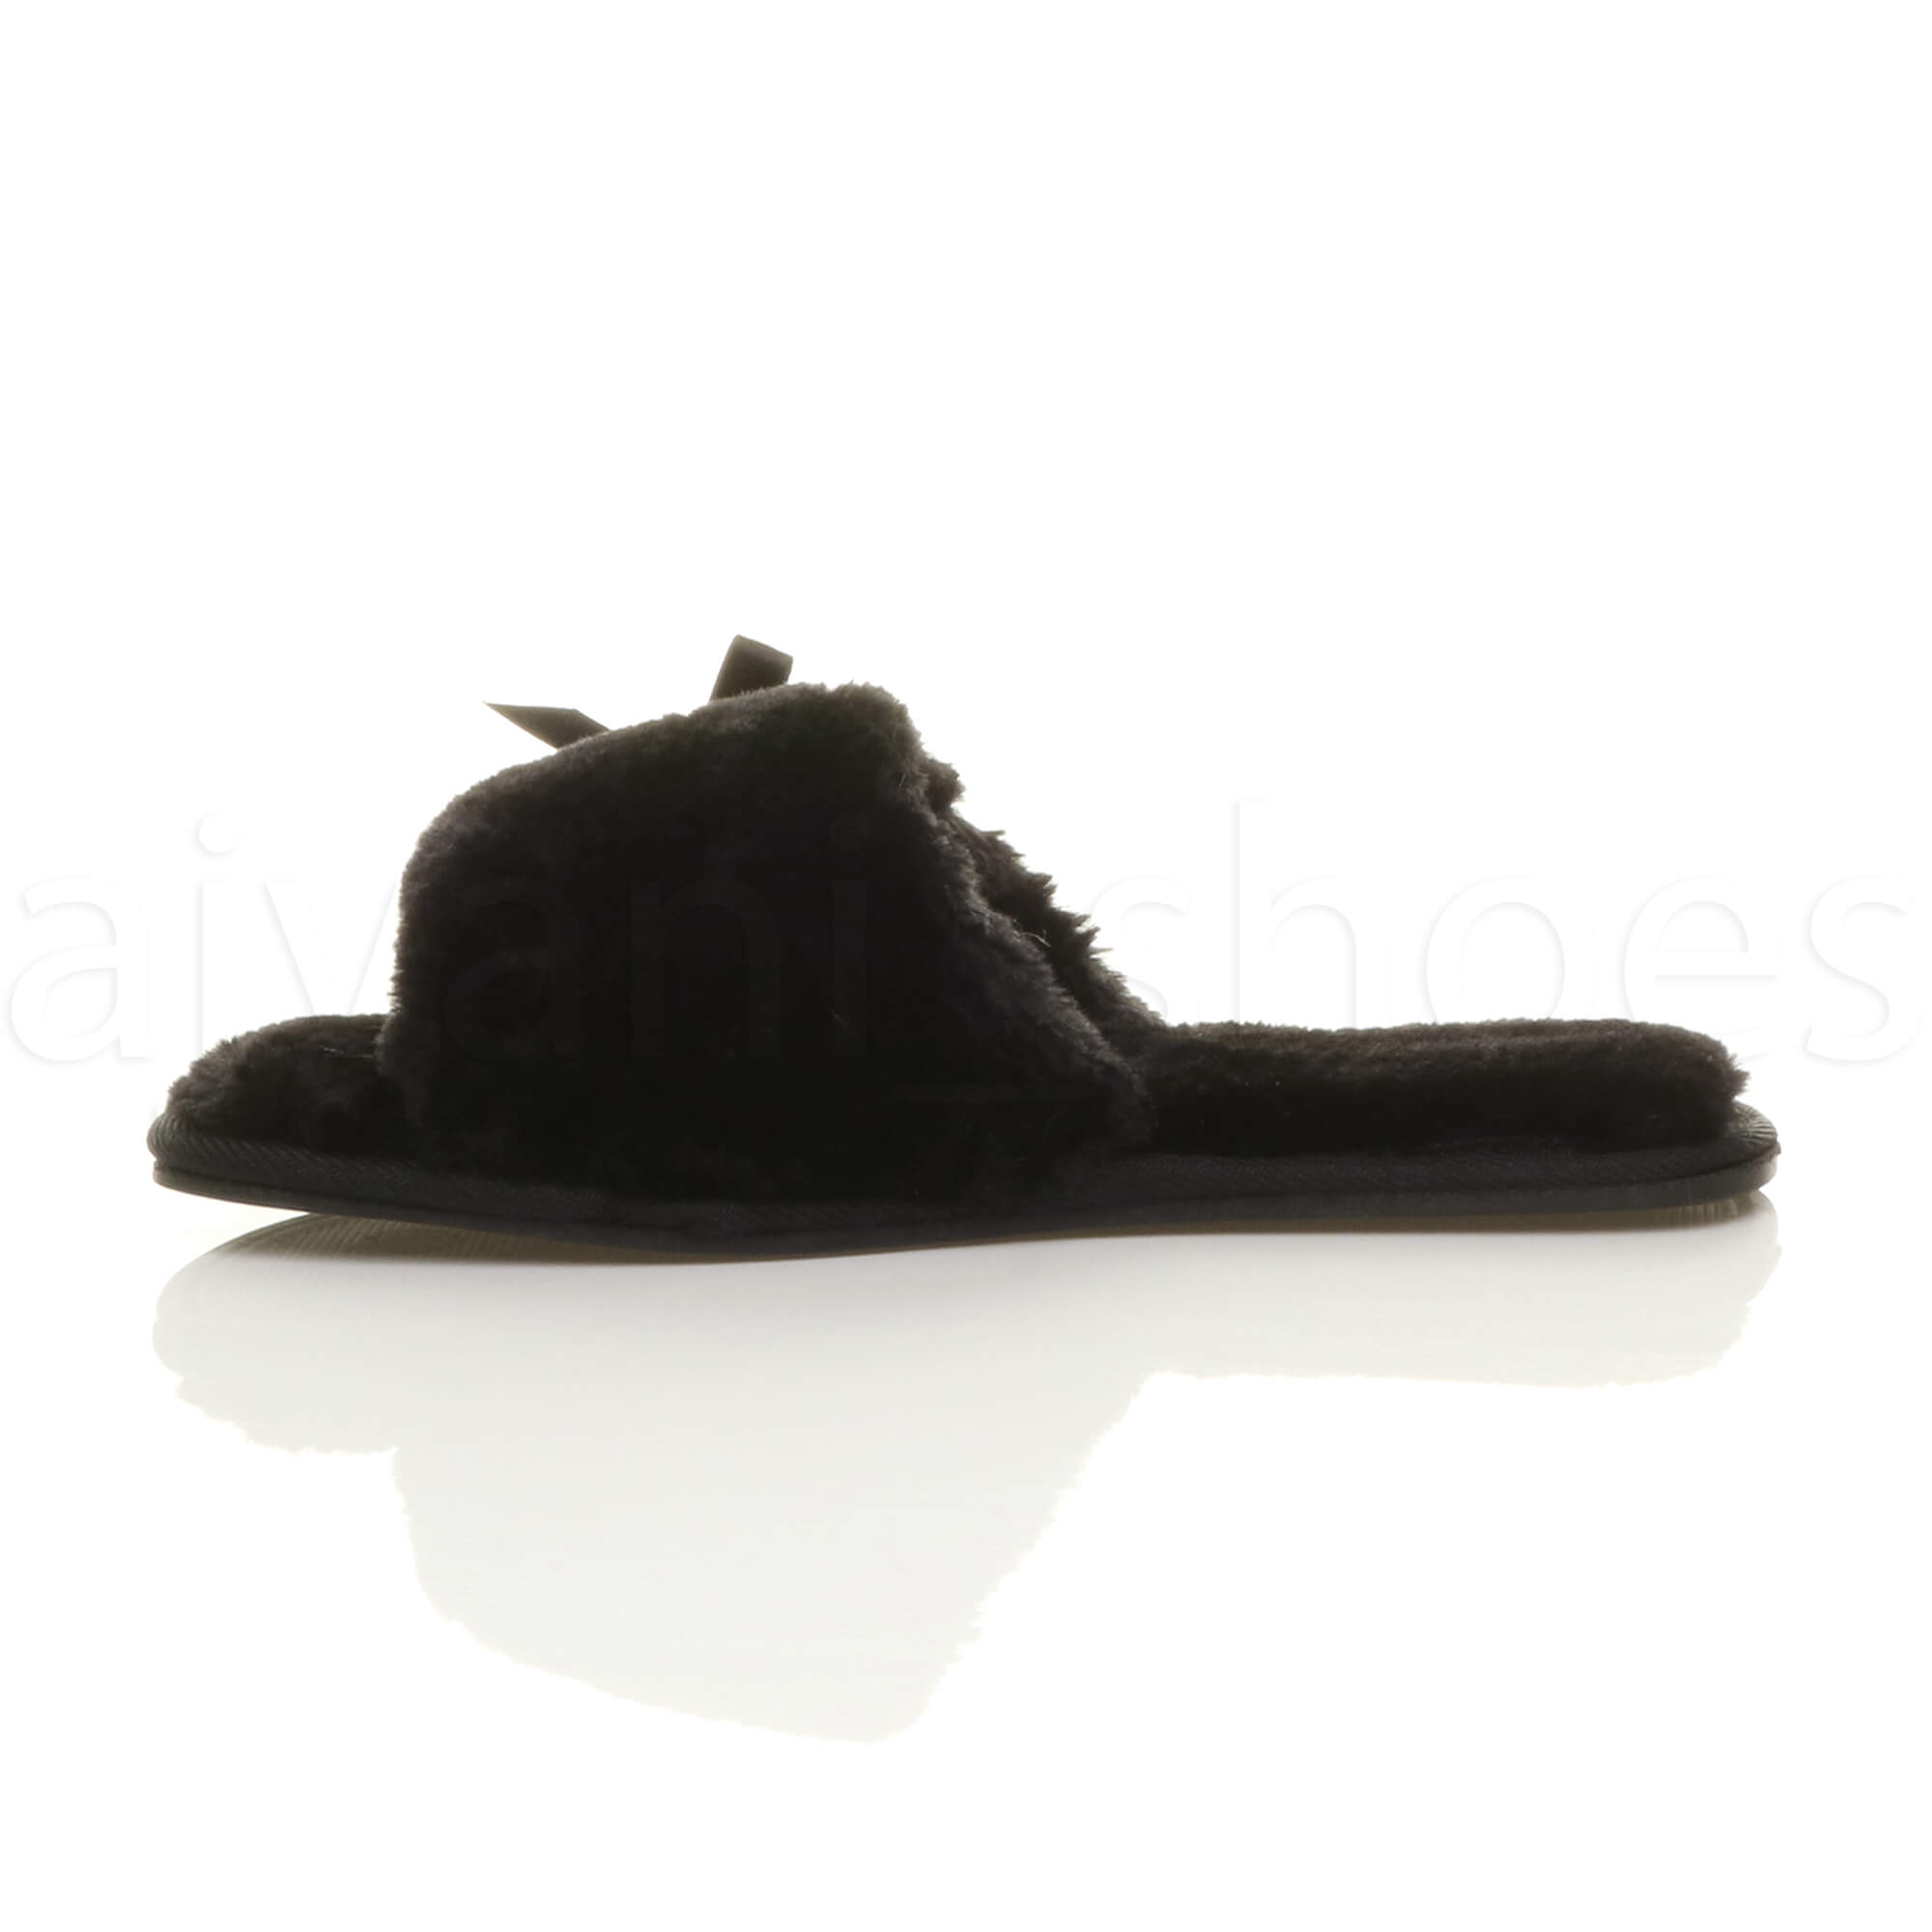 WOMENS-LADIES-FLAT-PEEP-TOE-BOW-LUXURY-COSY-FUR-LINED-SLIP-ON-SLIPPERS-SIZE thumbnail 12